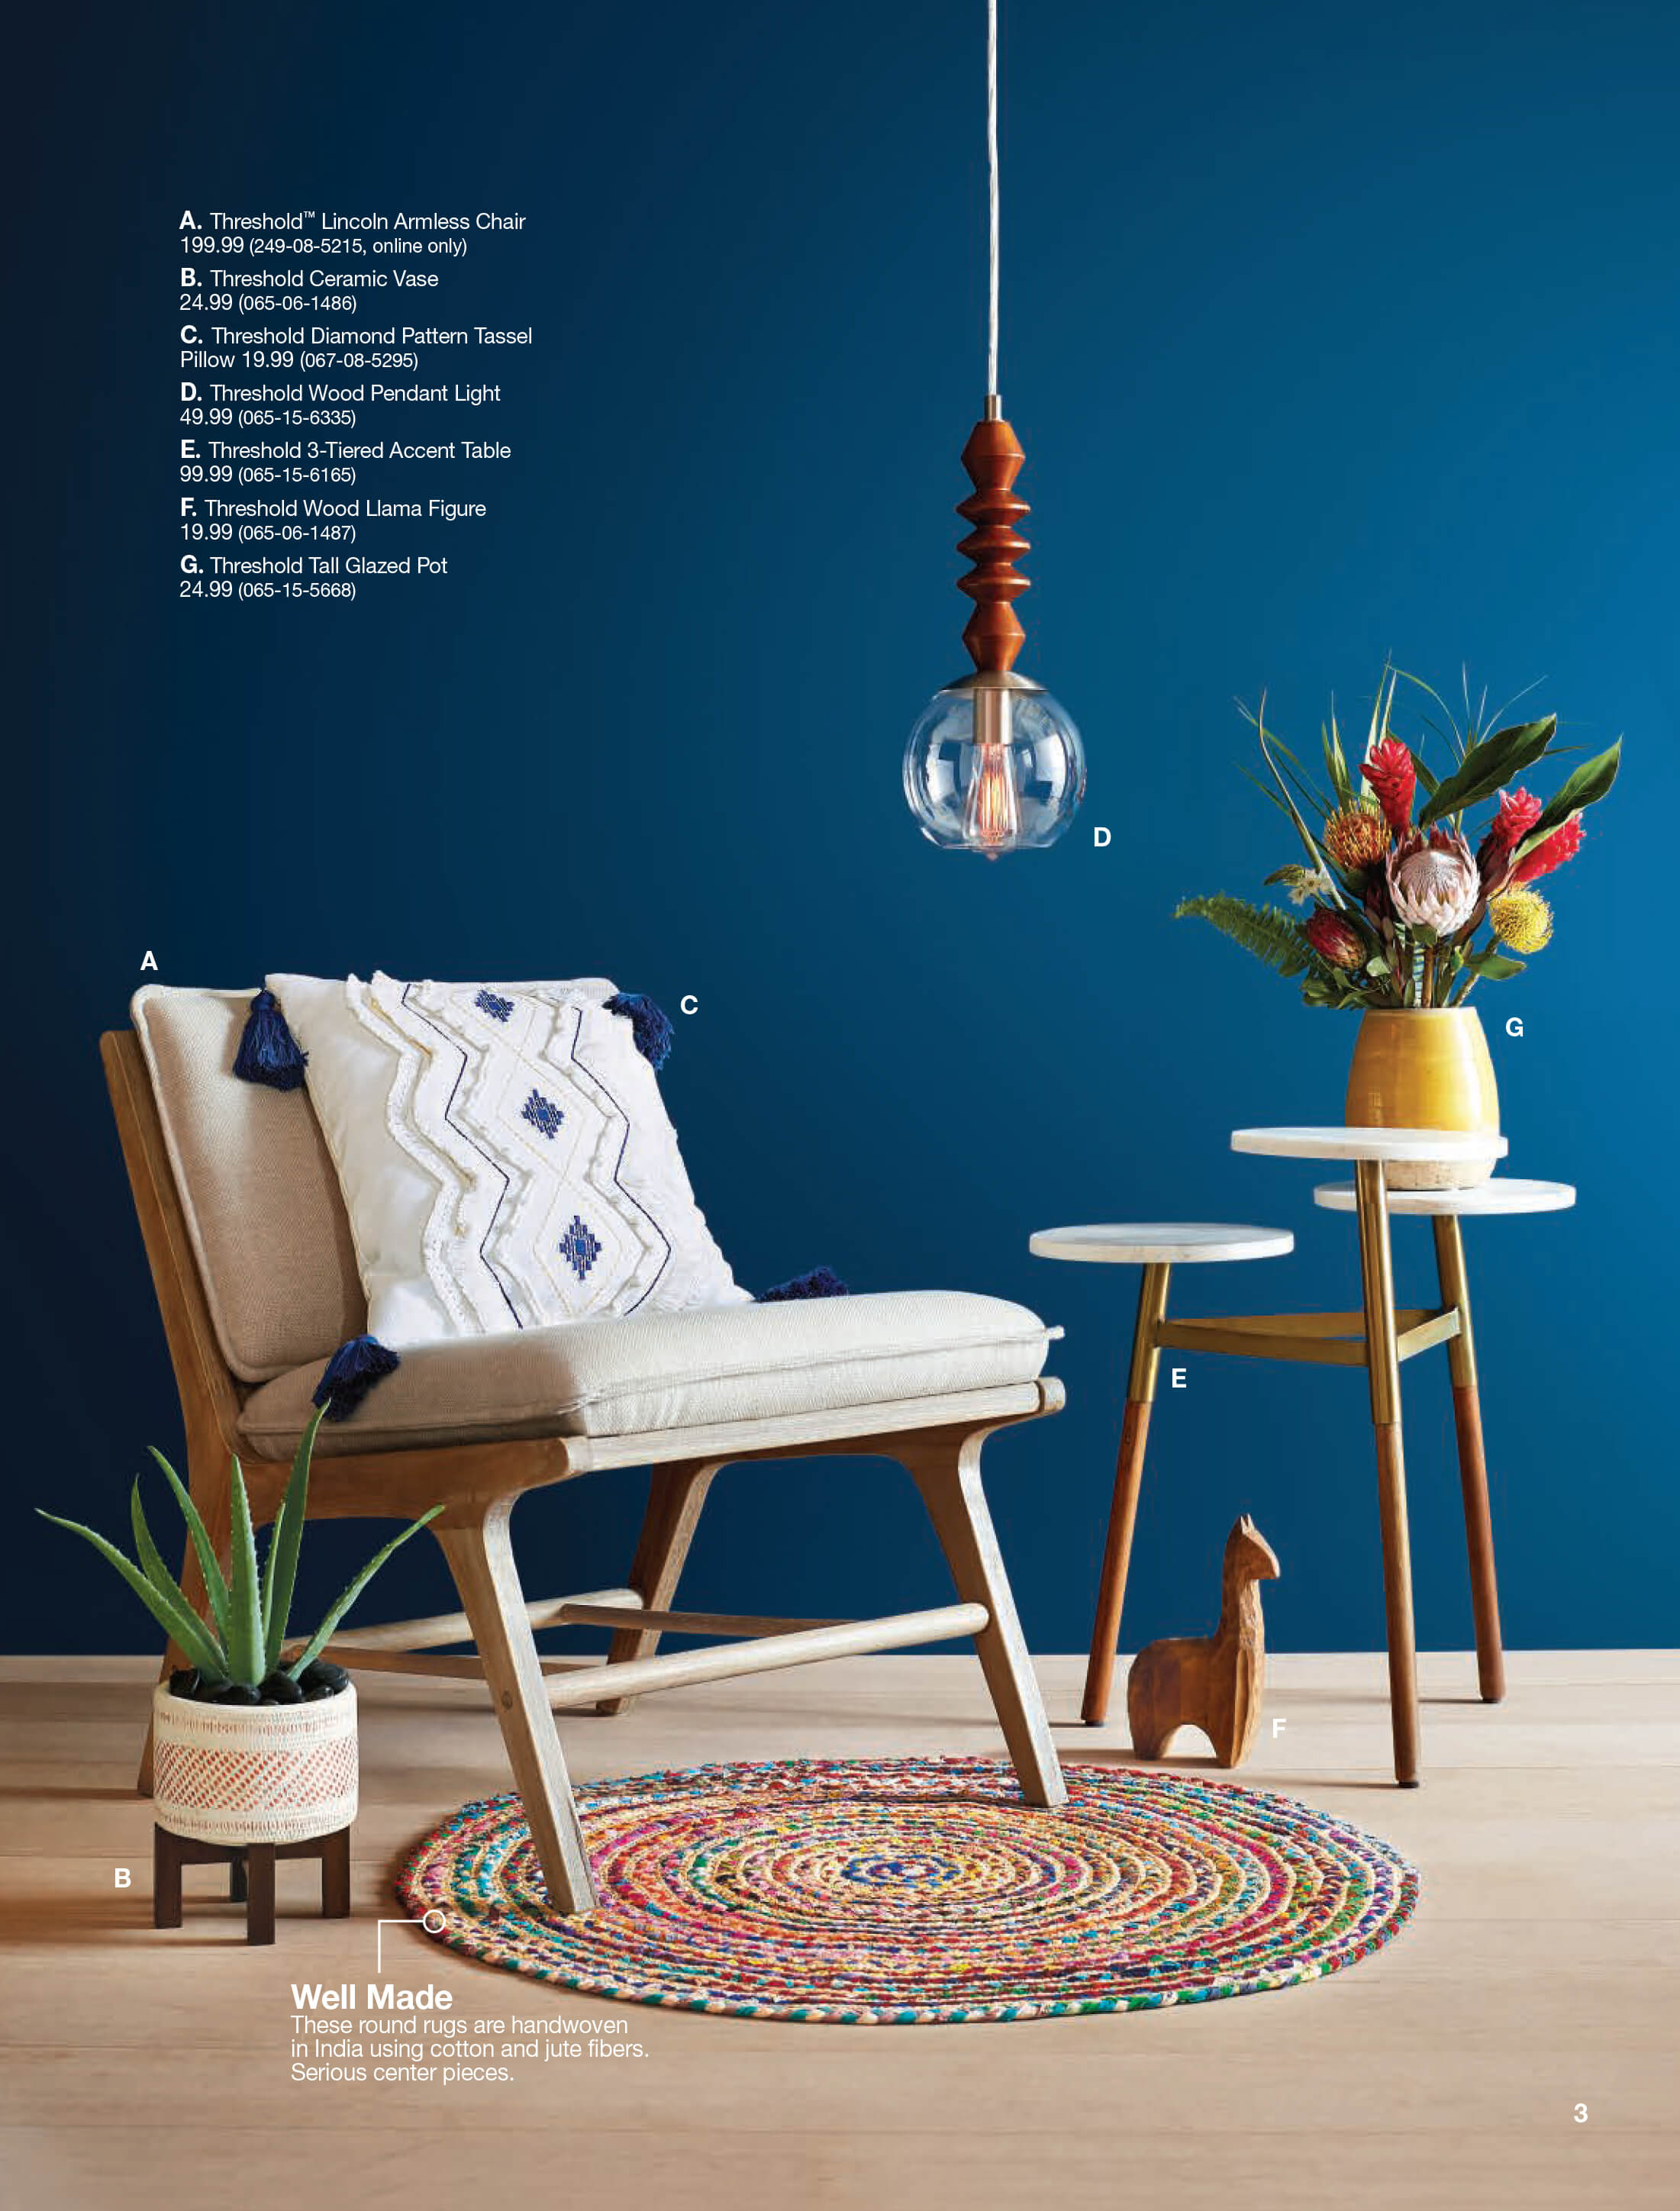 new target home product and emily henderson first look spring catalog threshold accent table pier crystal bedside lights used end tables pottery barn sofa white round dining set